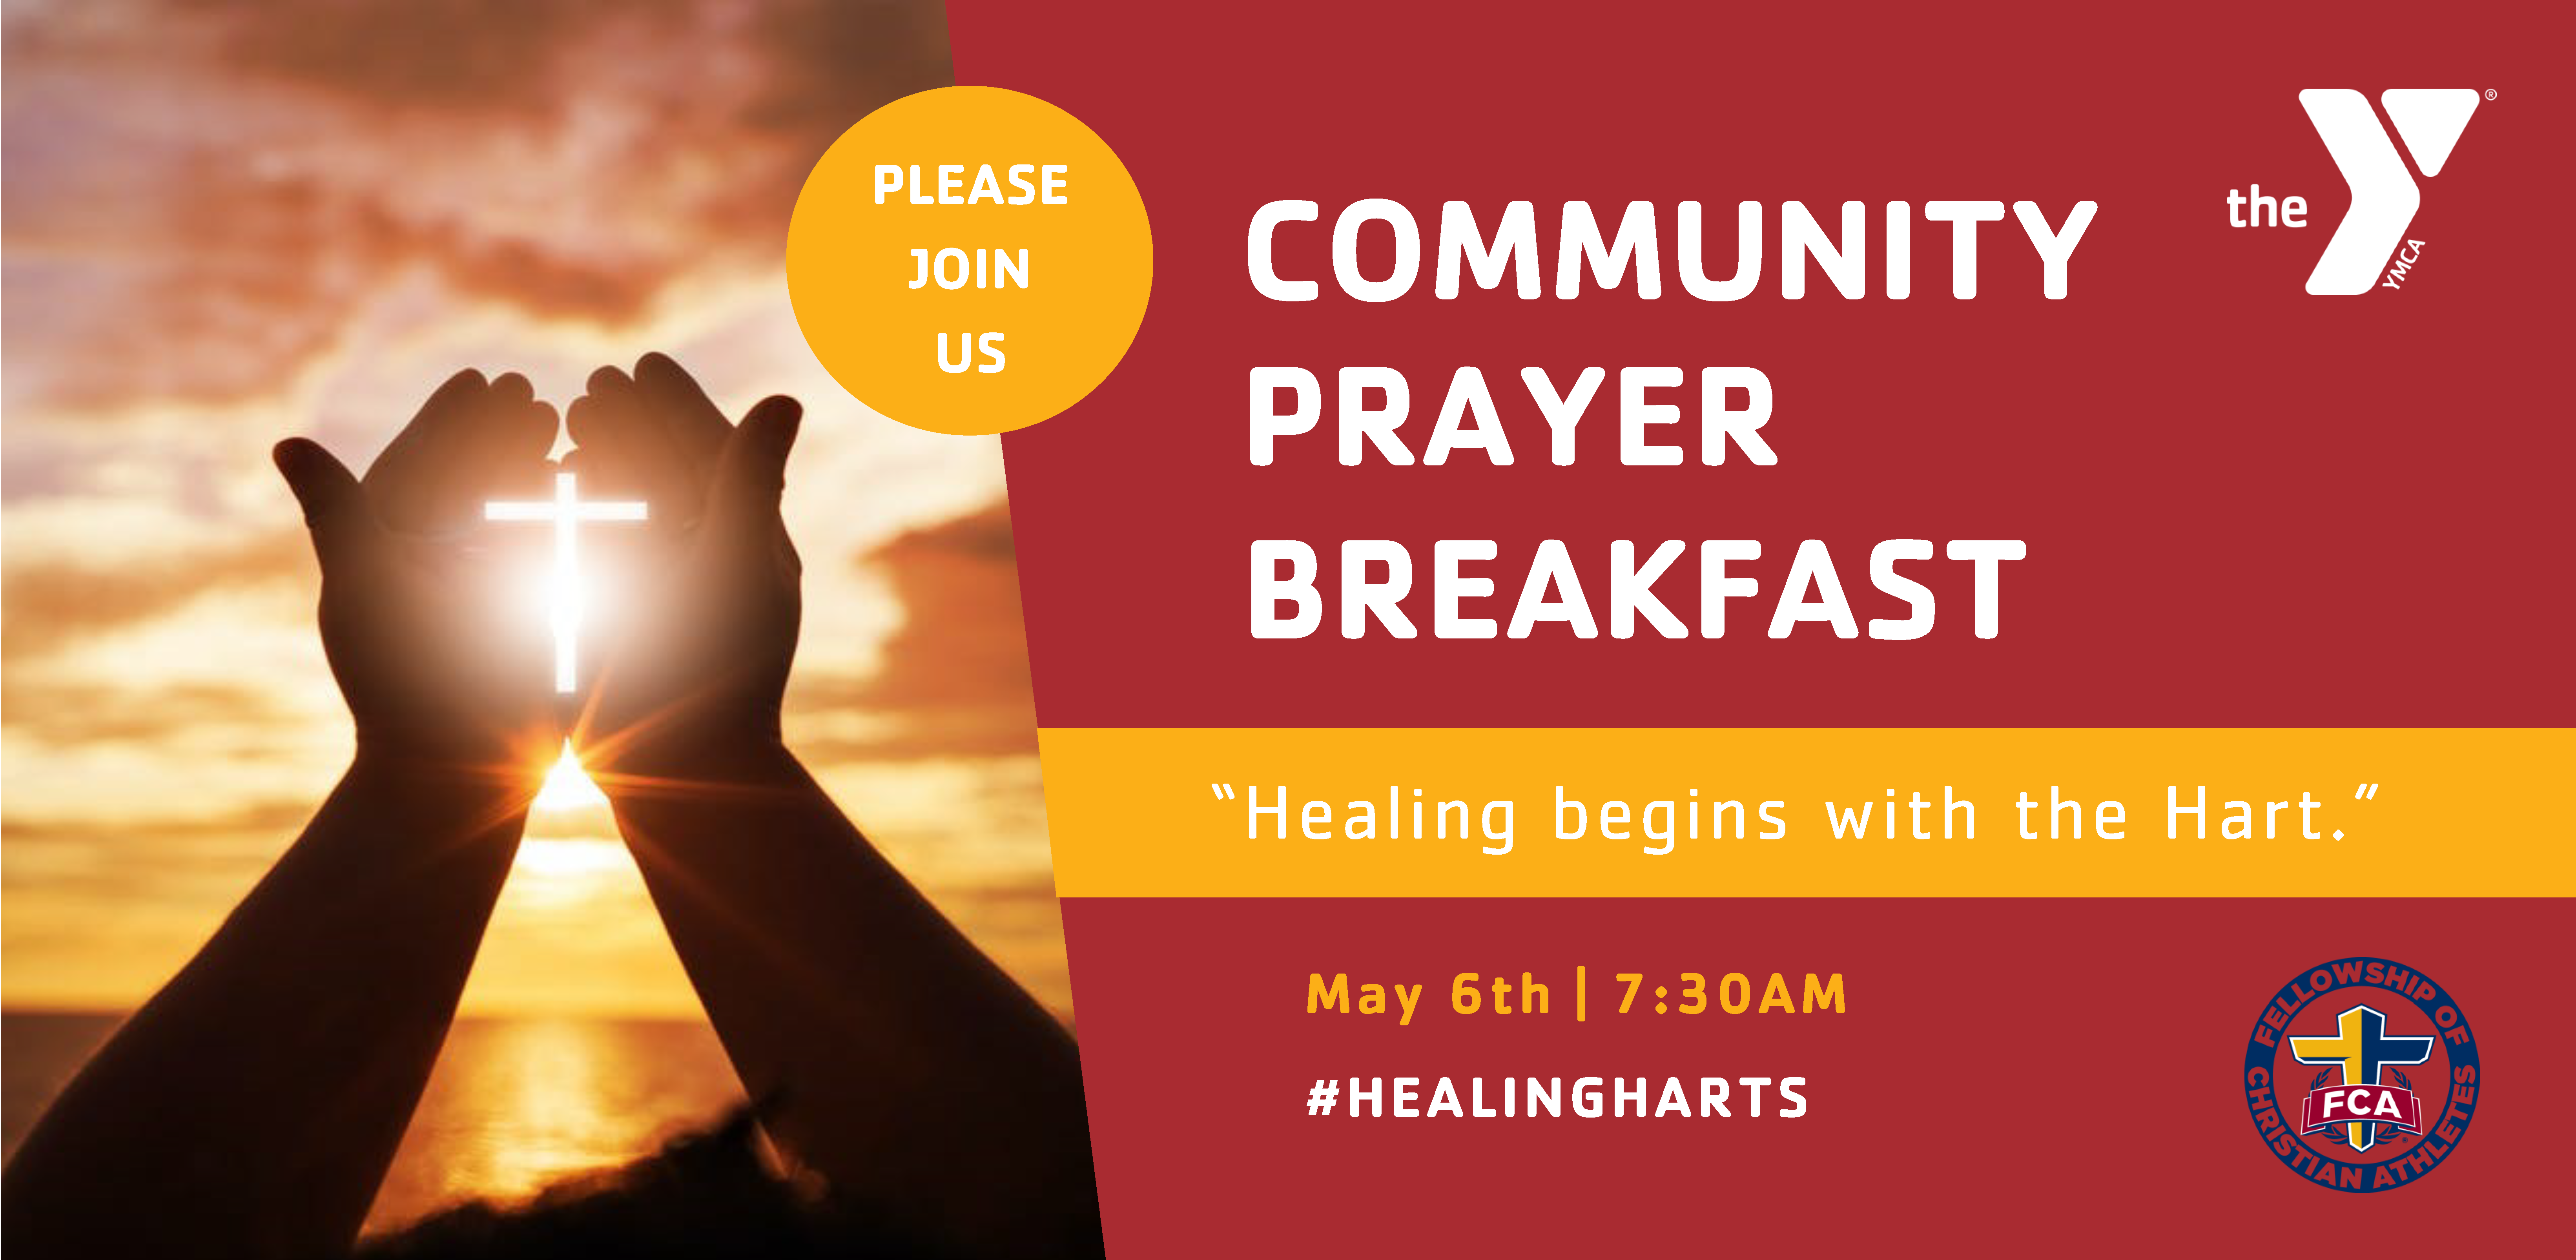 https://www.ymcaupd.org/sites/default/files/revslider/image/Prayer%20Breakfast%20-%20Save%20the%20Date%202021.png